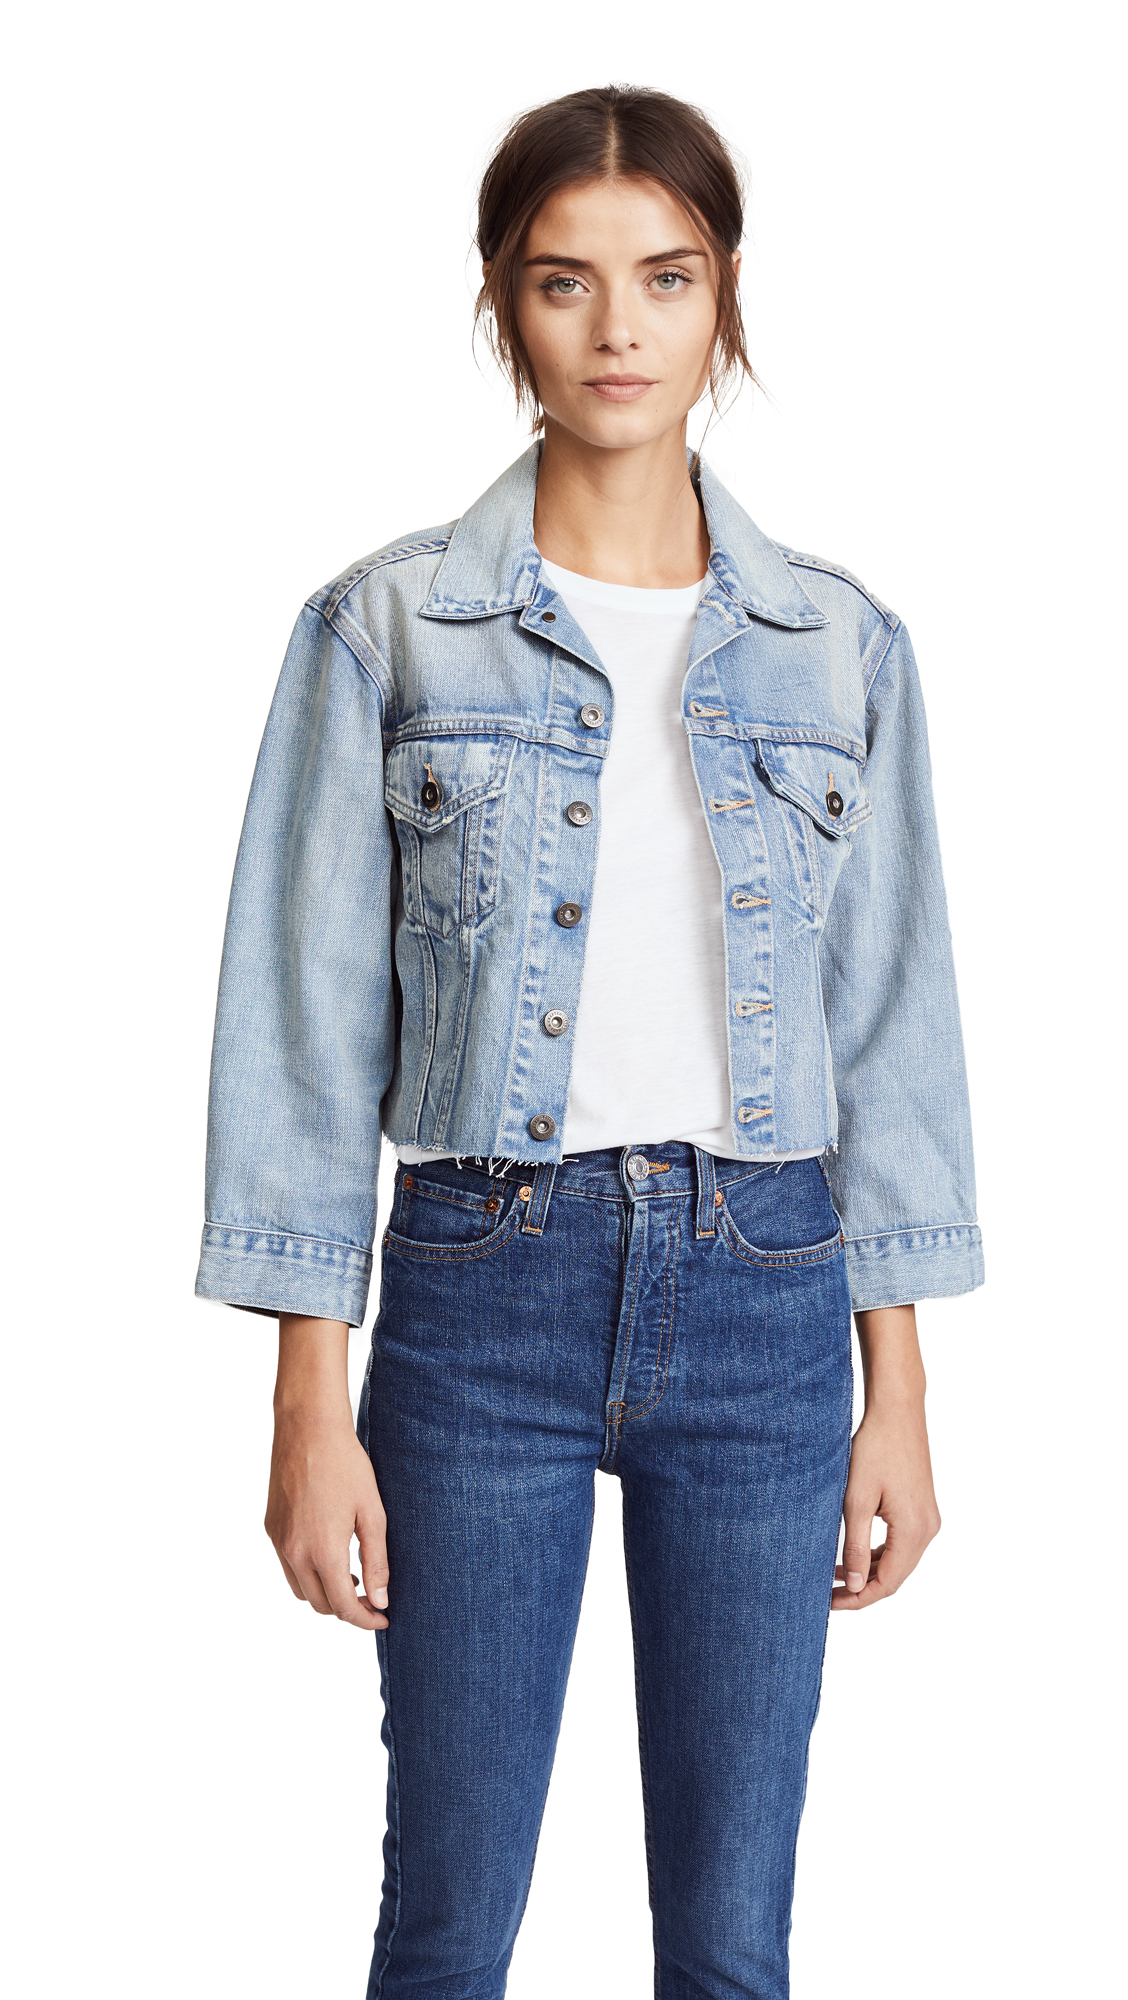 Levis LMC x SHOPBOP Cropped BF Trucker Jacket - Salt Water Blue